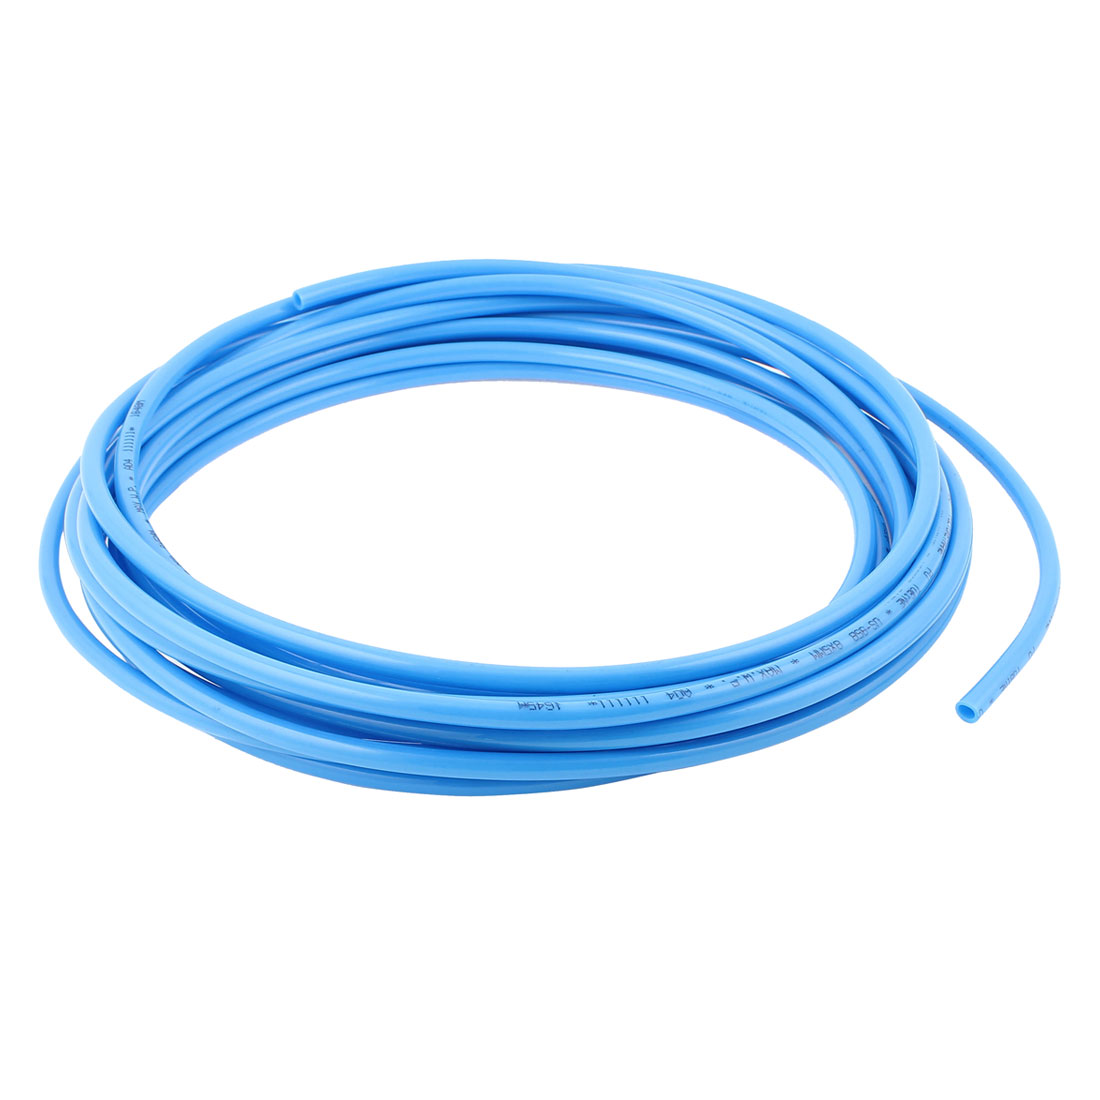 UXCELL 8Mm X 5Mm Pneumatic Air Compressor Tubing Pu Hose Tube Pipe 9.5M Blue 557t071nf432s d sub backshells sld banding bs top mr li